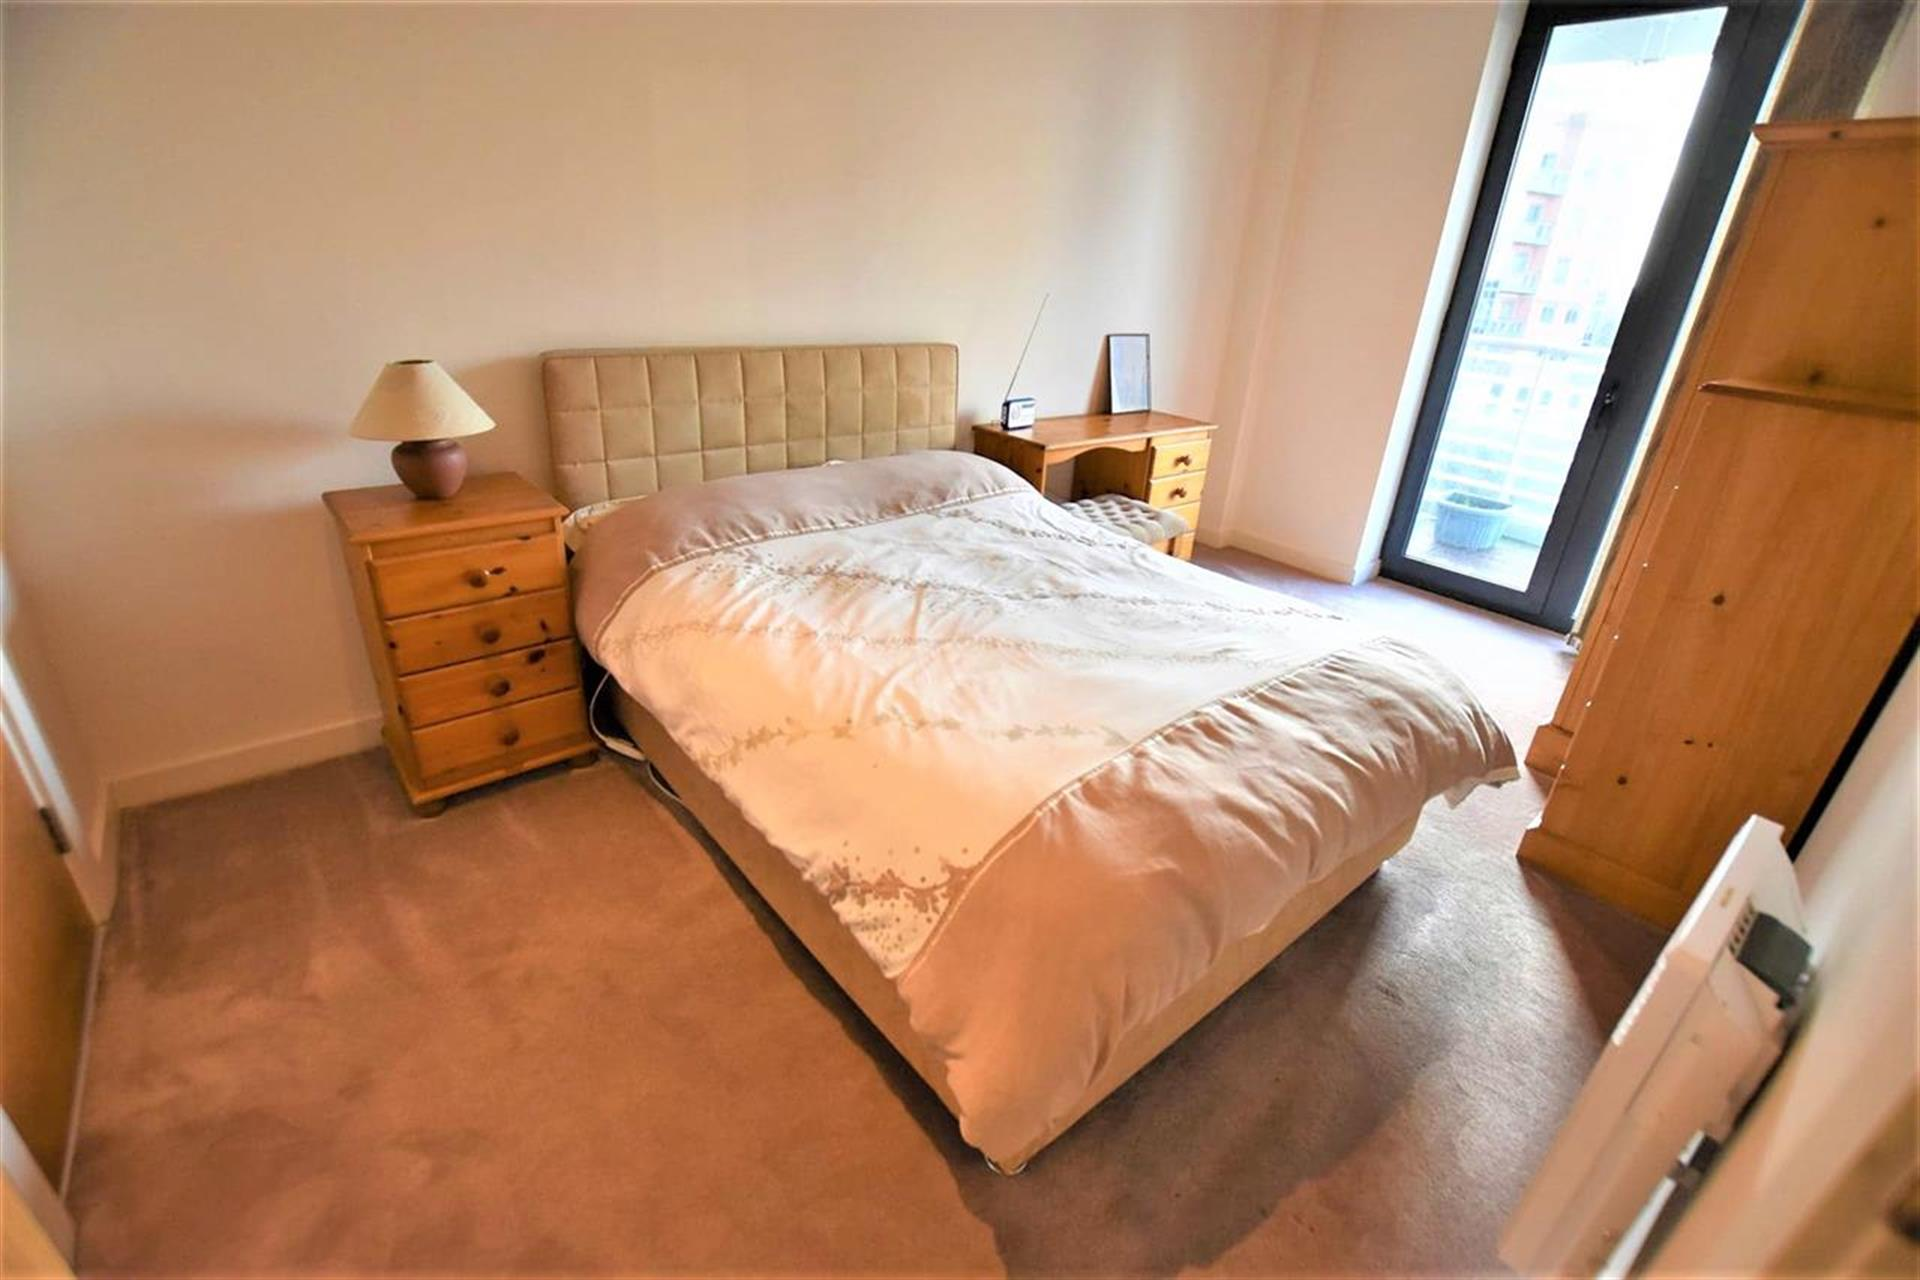 2 Bedroom Apartment Flat / Apartment For Sale - Master Bedroom